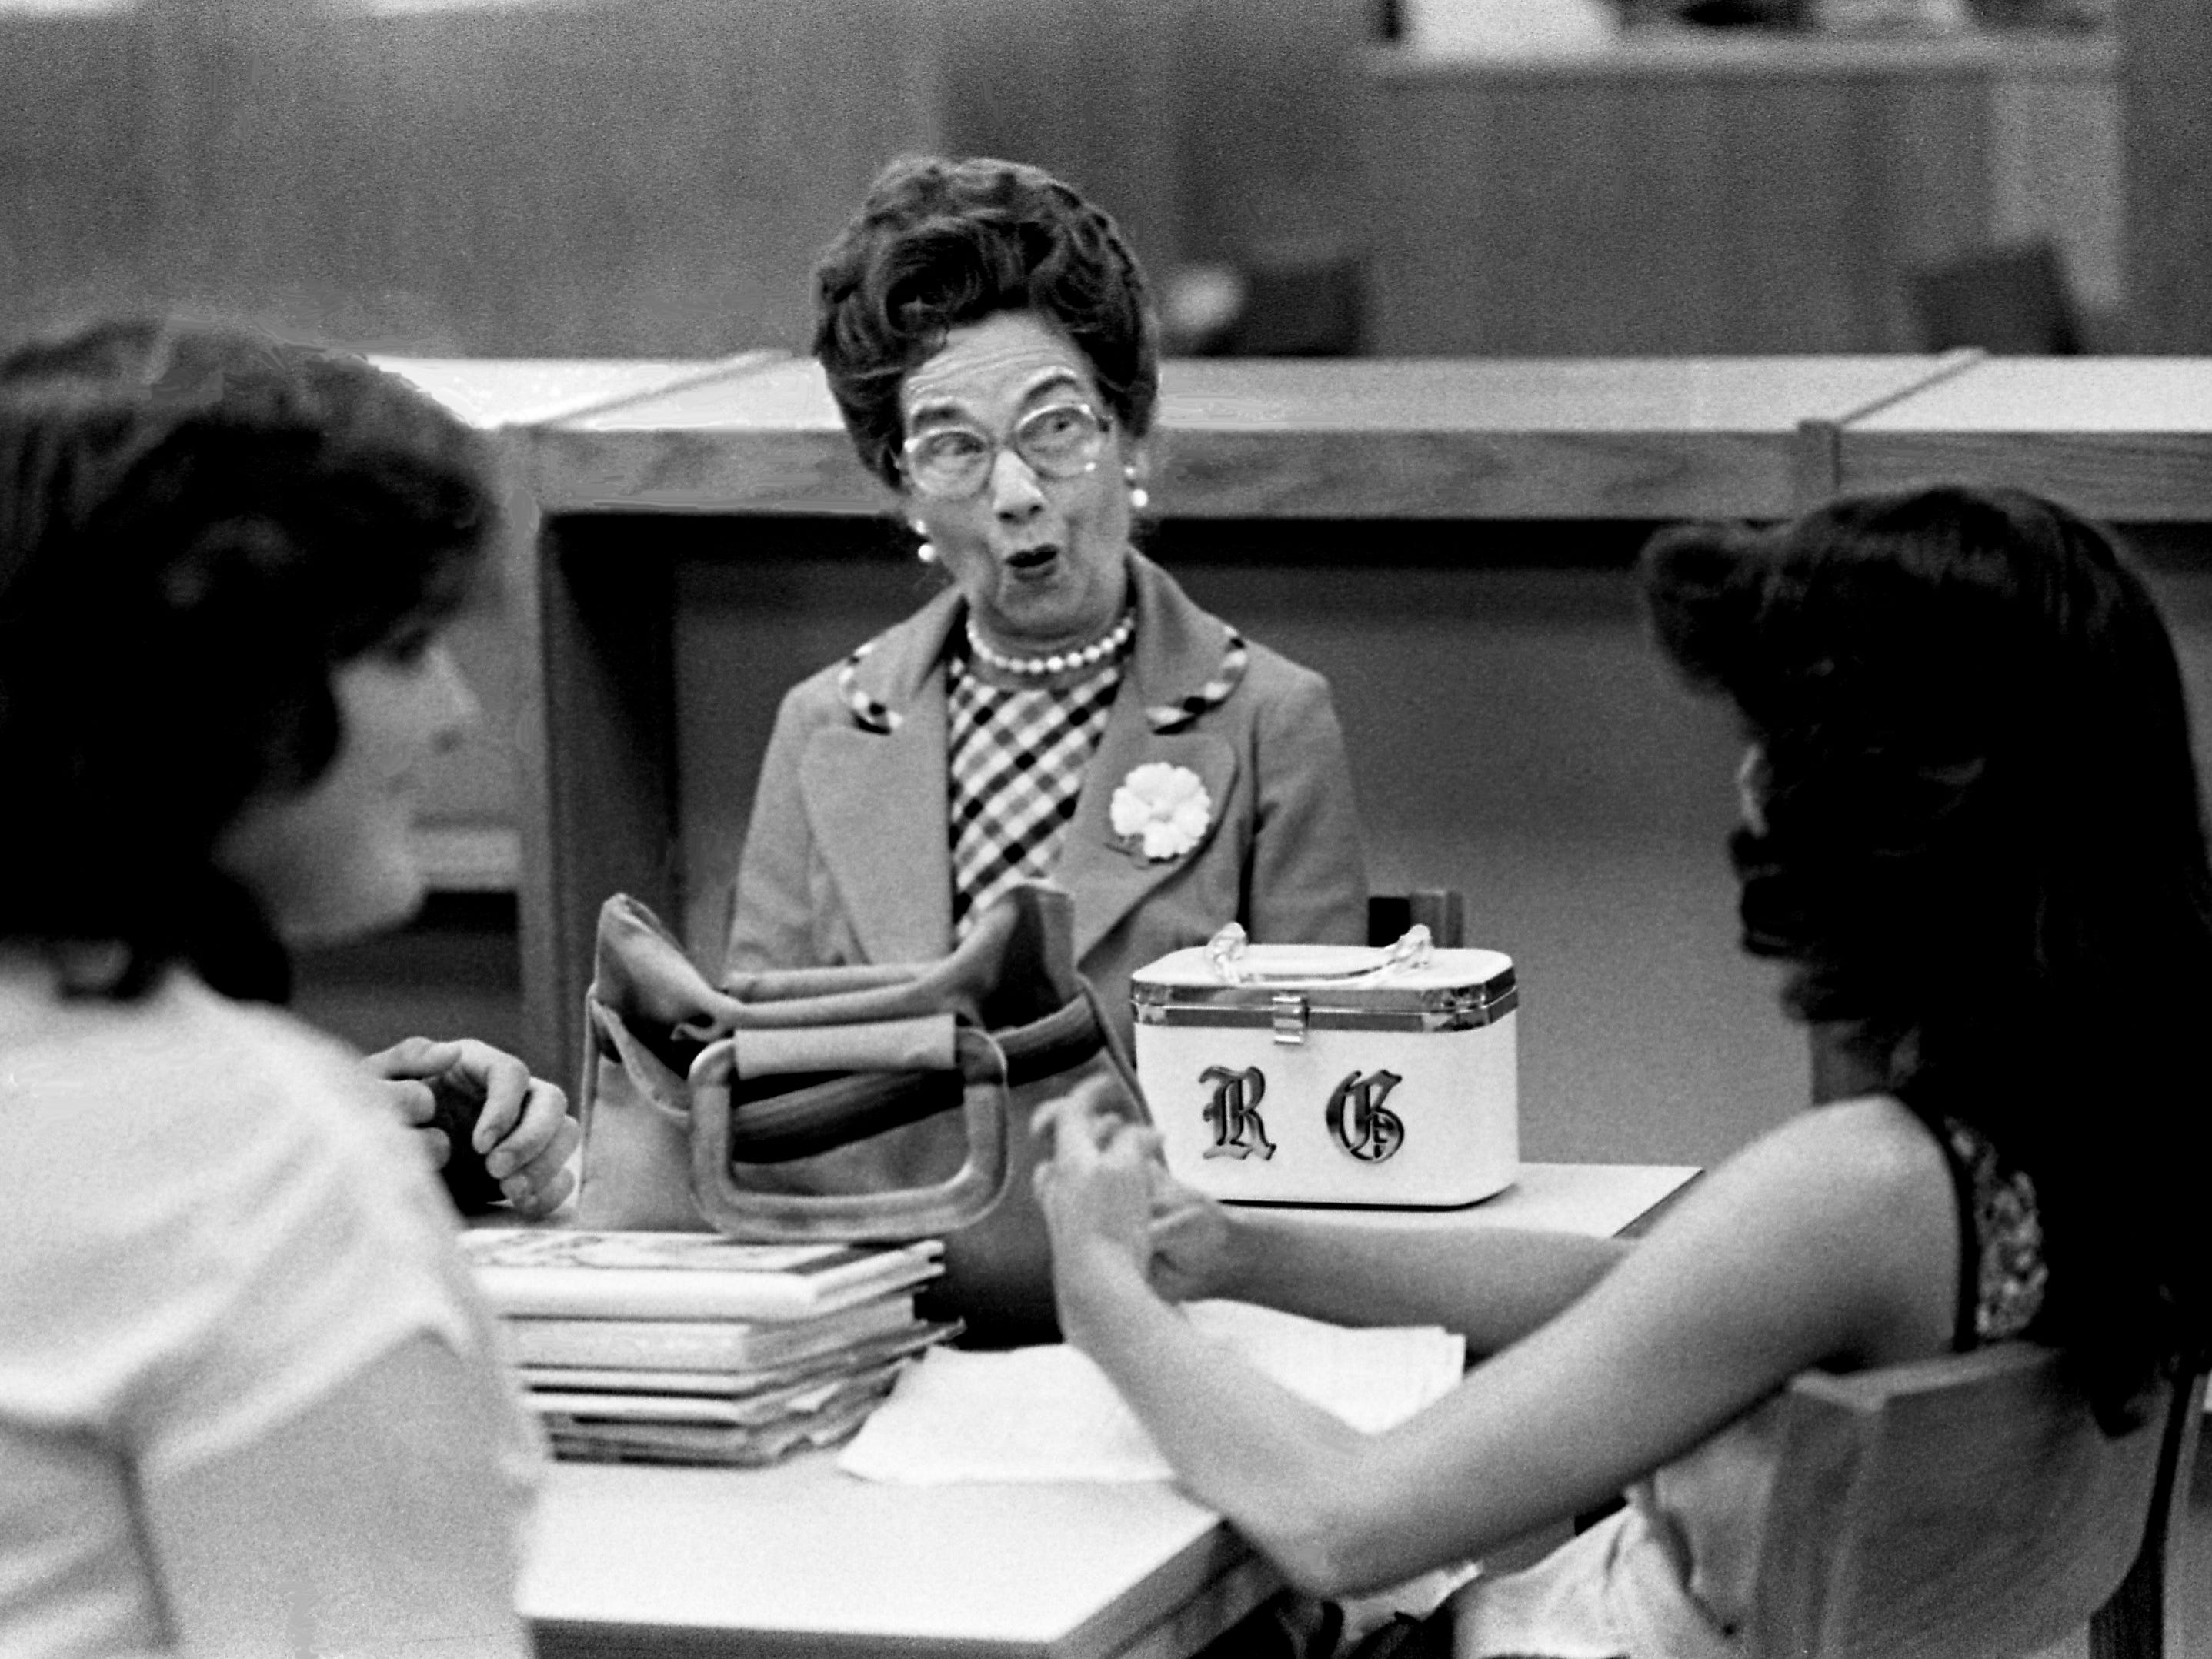 """Mrs. Ruth Gifford, left, acts a little surprised when Mount Juliet High School senior Dianne Miller, right, tells the visitor about some of the daily activities at the school April 25, 1979. Senior citizens are making three-day visits to the Wilson County schools for the """"Senior-Senior Days"""" program."""